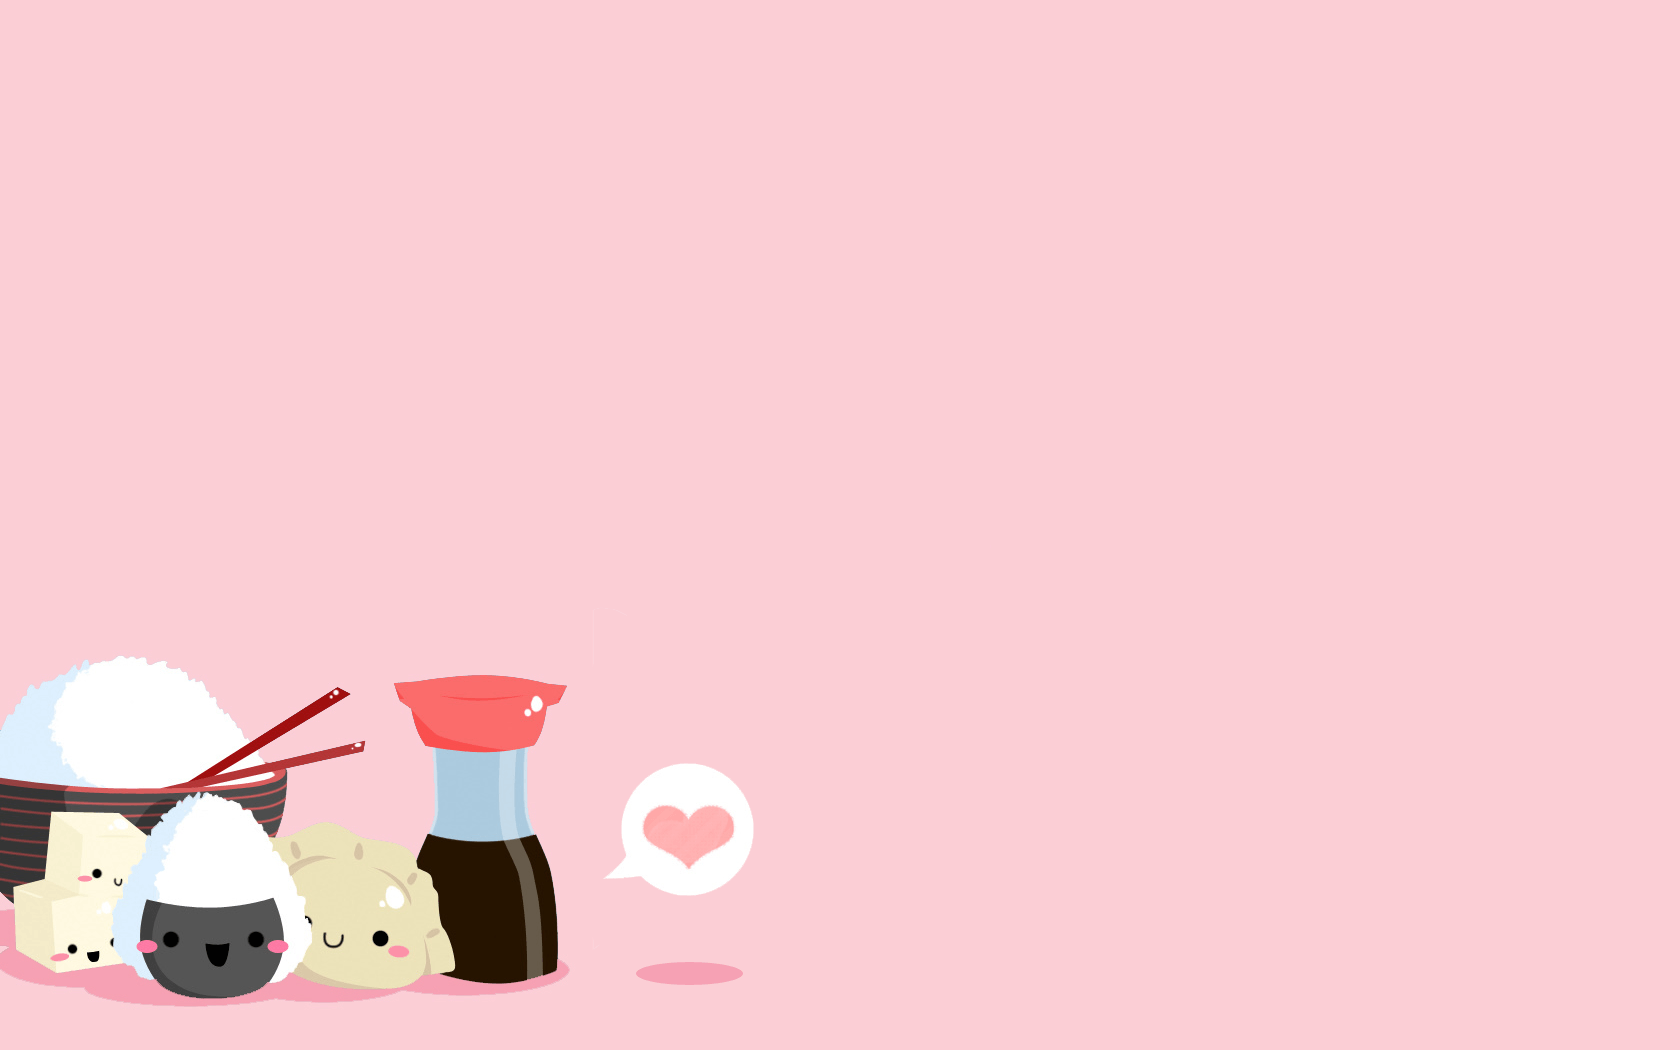 1680x1050 Kawaii HD Wallpapers - Los mejores fondos de Kawaii HD gratis - WallpaperAccess